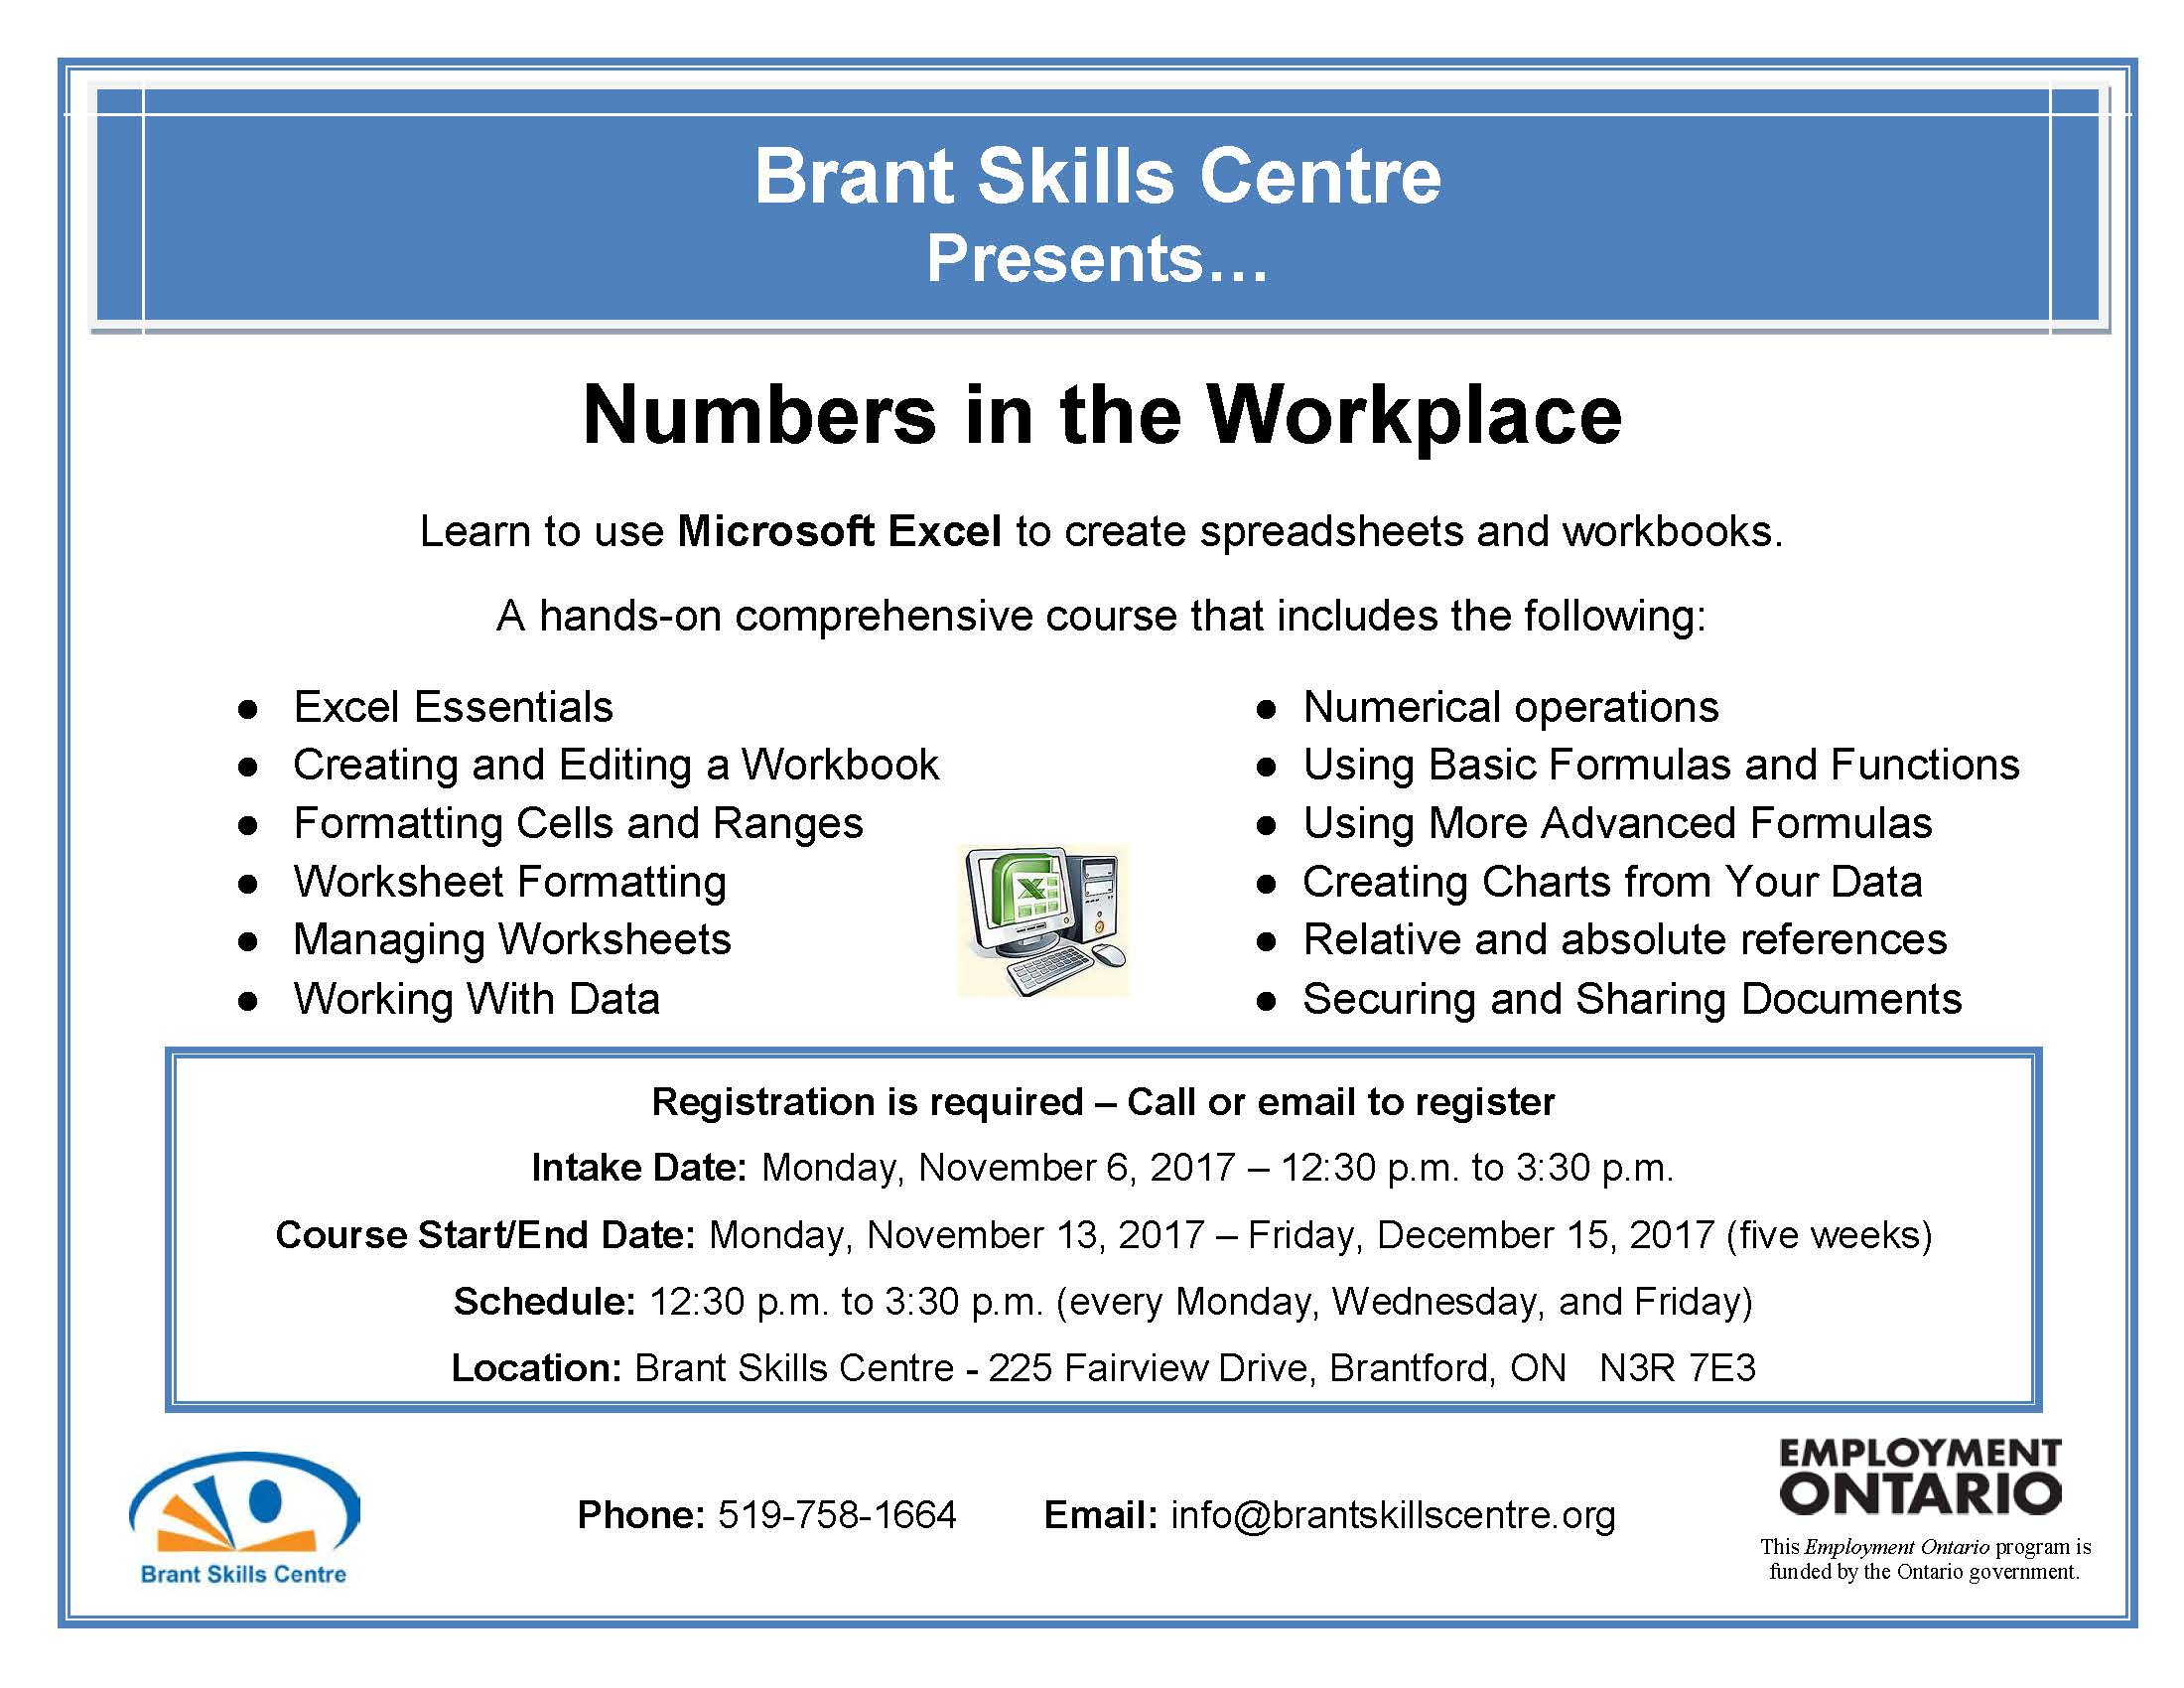 Worksheets Employment Skills Worksheets prepare for employment apprenticeships and training programs click here a pdf version of the numbers in workplace flyer